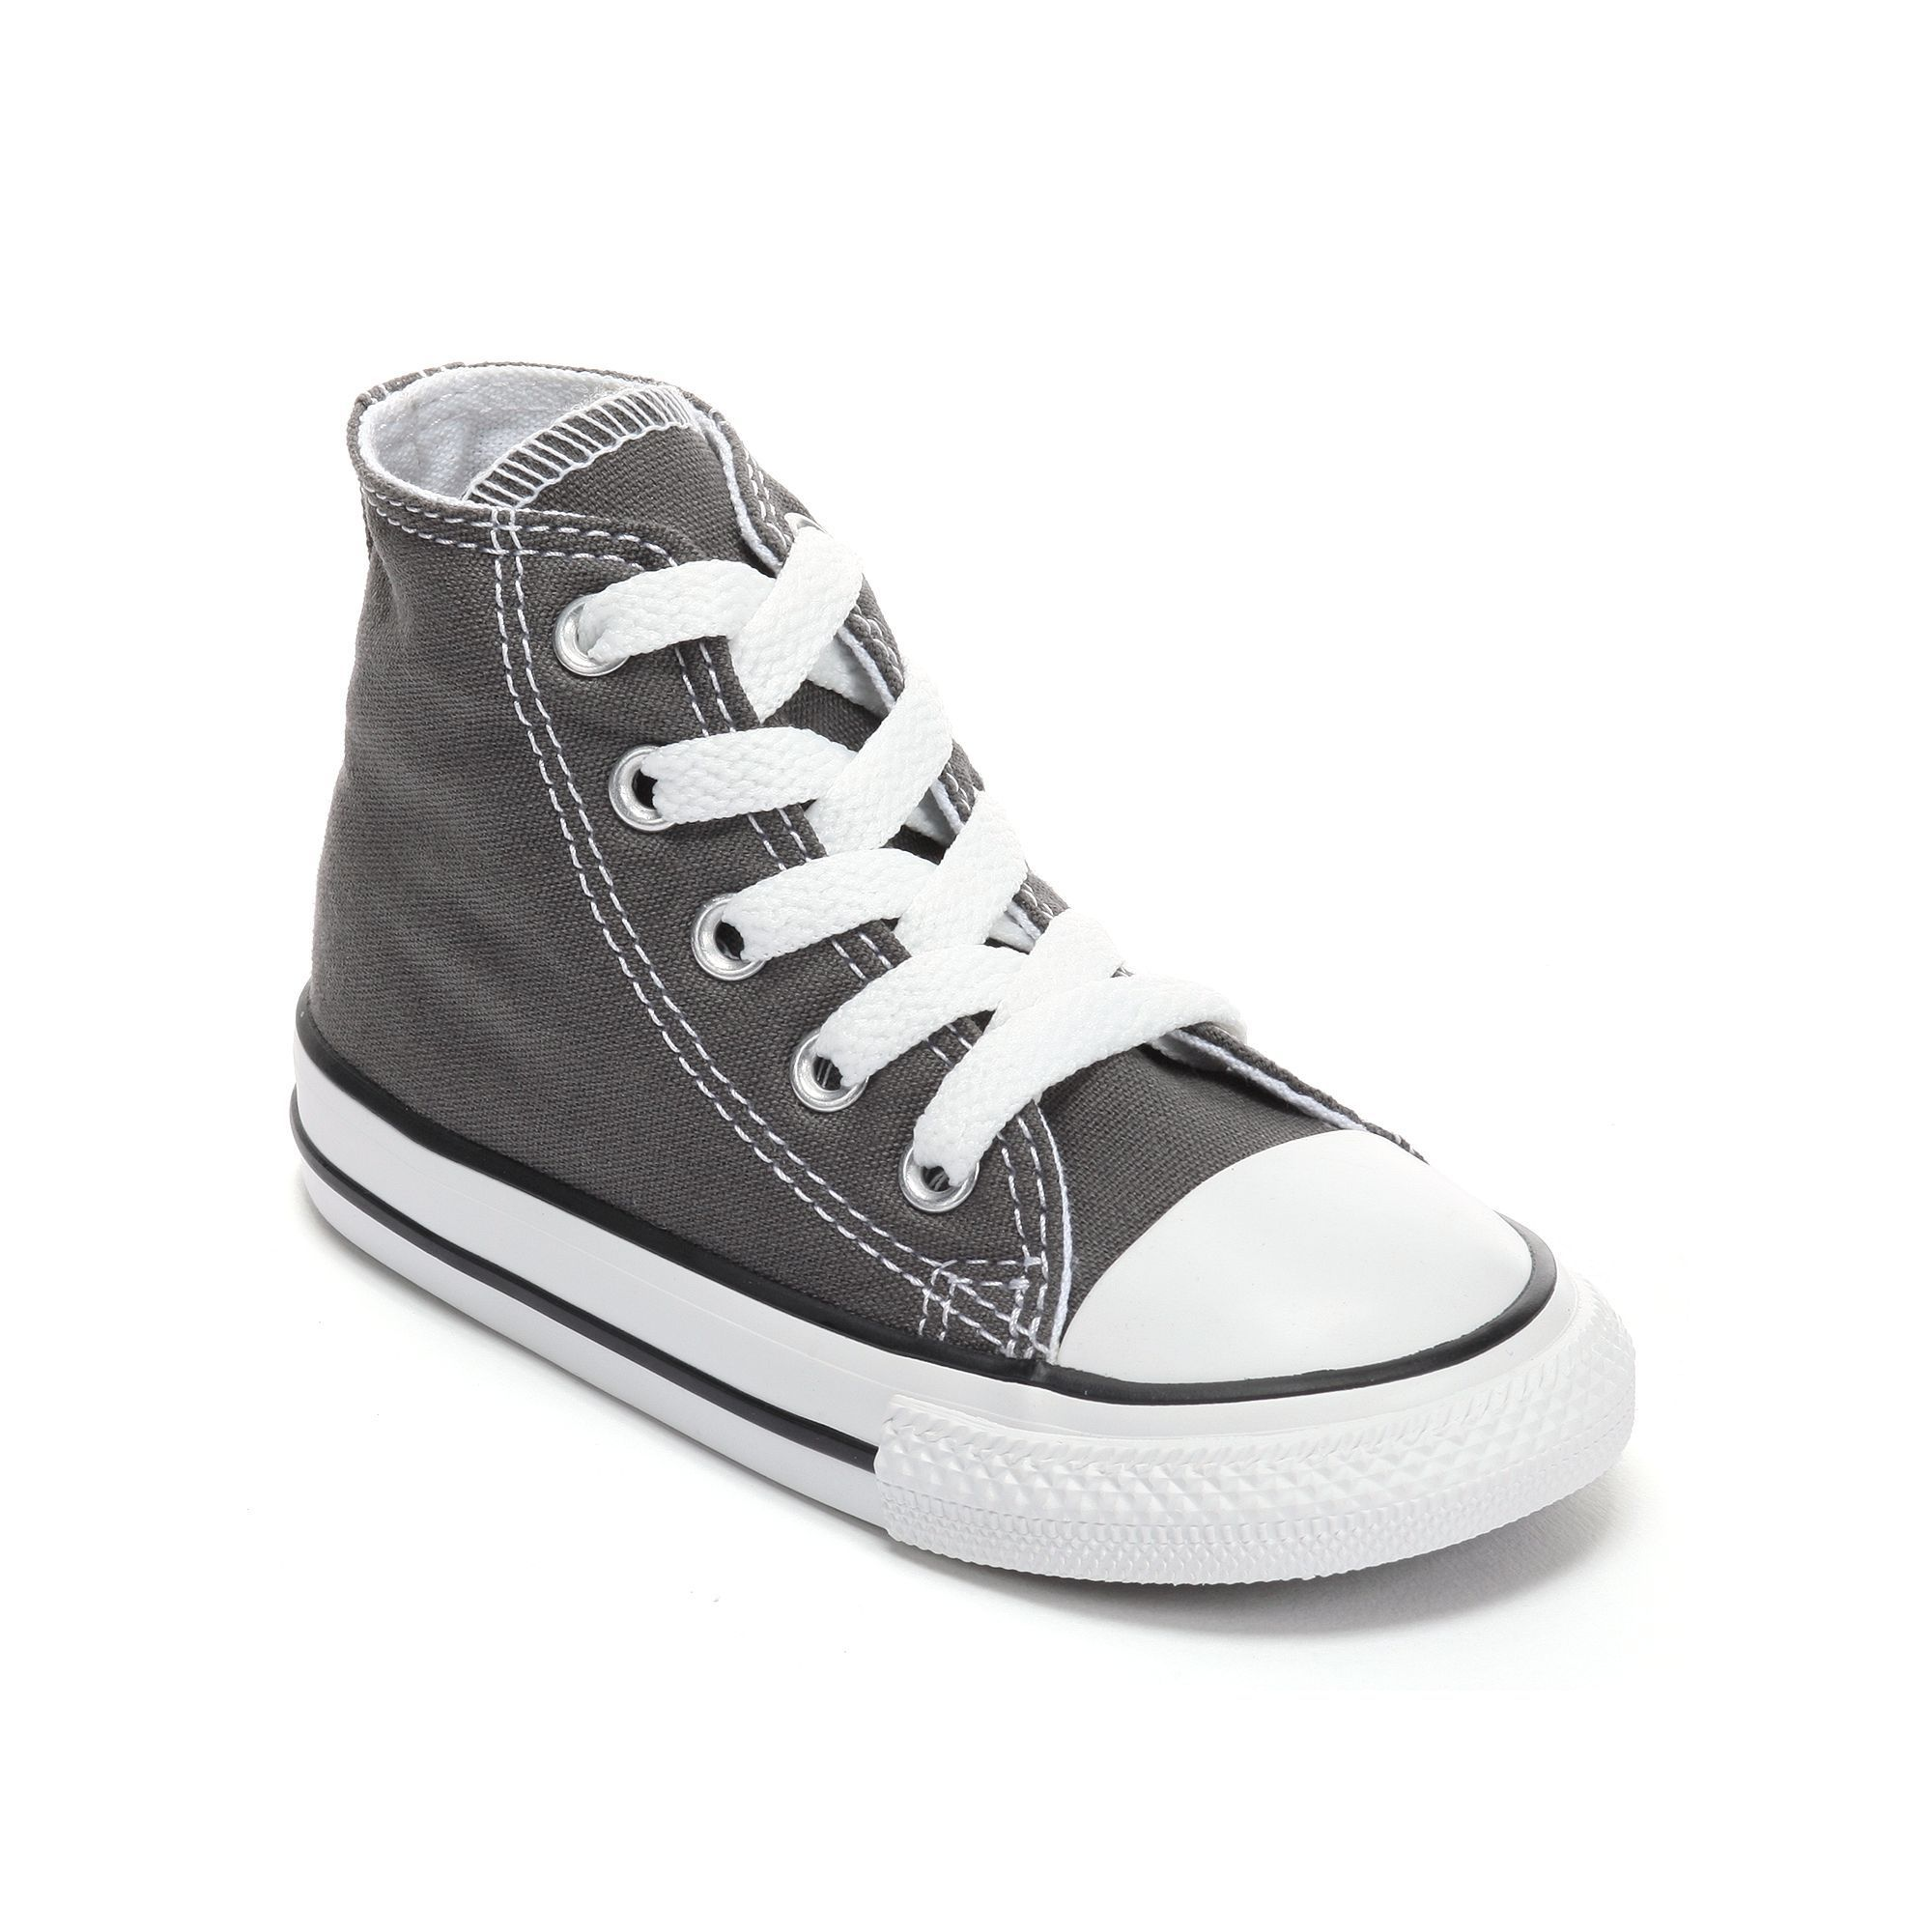 b9e42719ab5a Baby   Toddler Converse Chuck Taylor All Star High-Top Sneakers ...